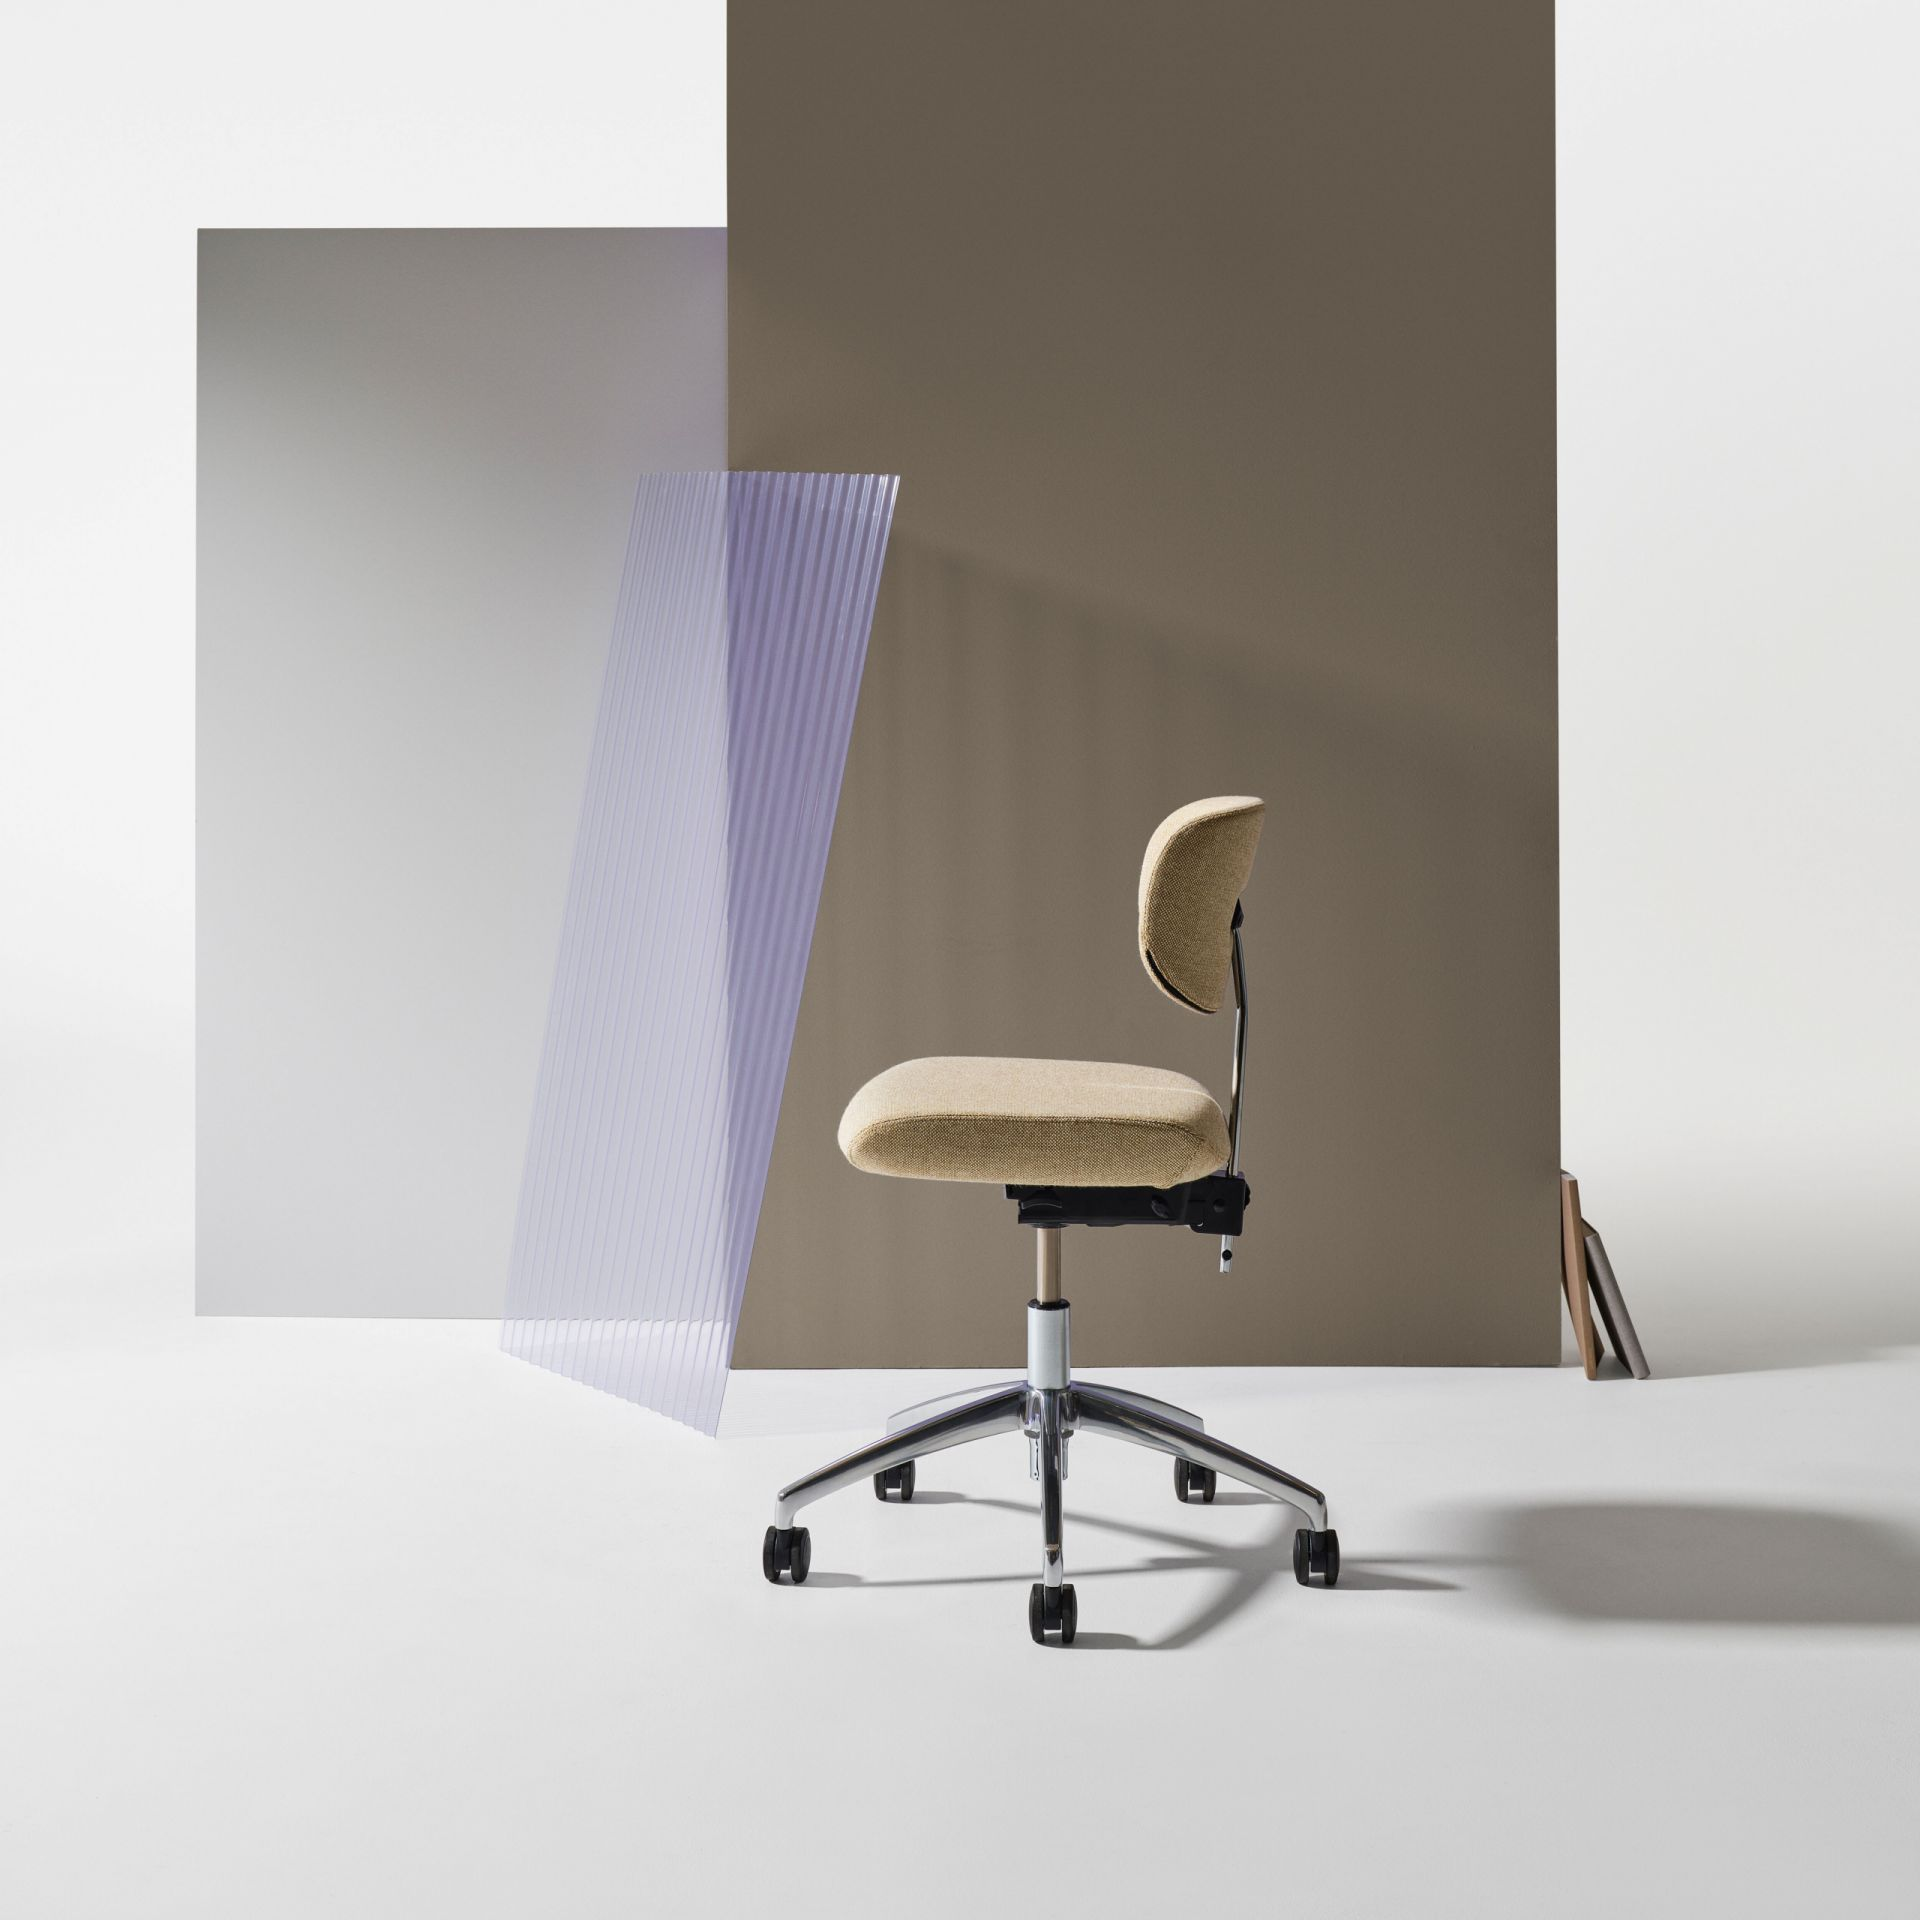 Savo Studio Studio workchair product image 2